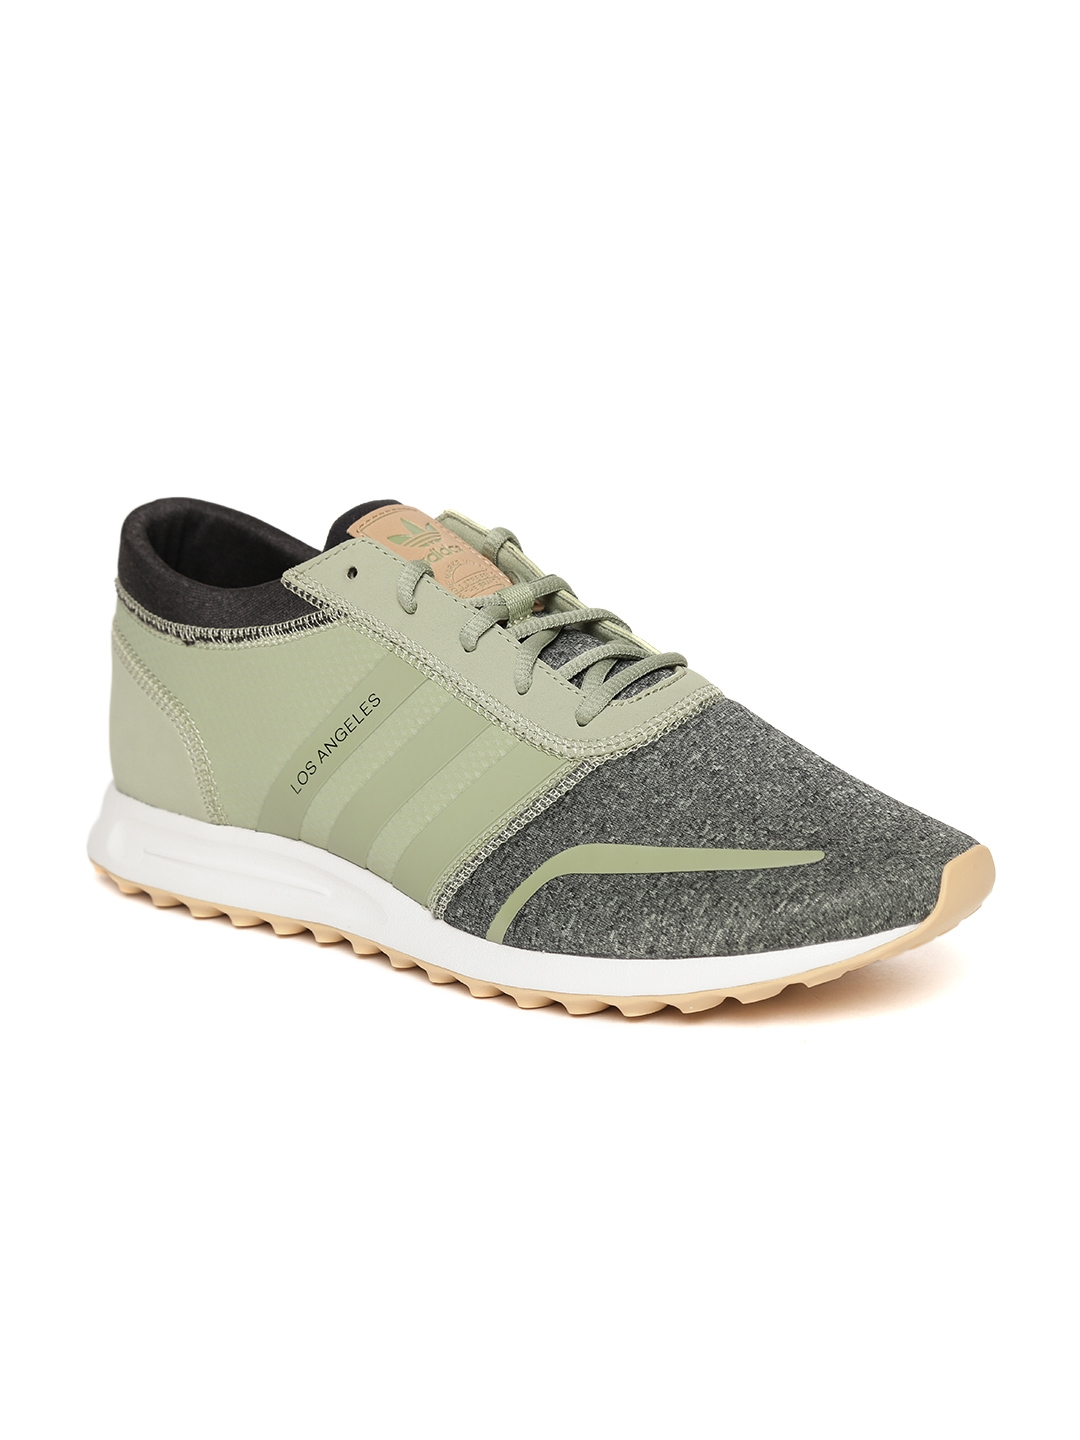 best service 92ee3 d5907 ADIDAS Originals Men Olive Green Los Angeles Sneakers